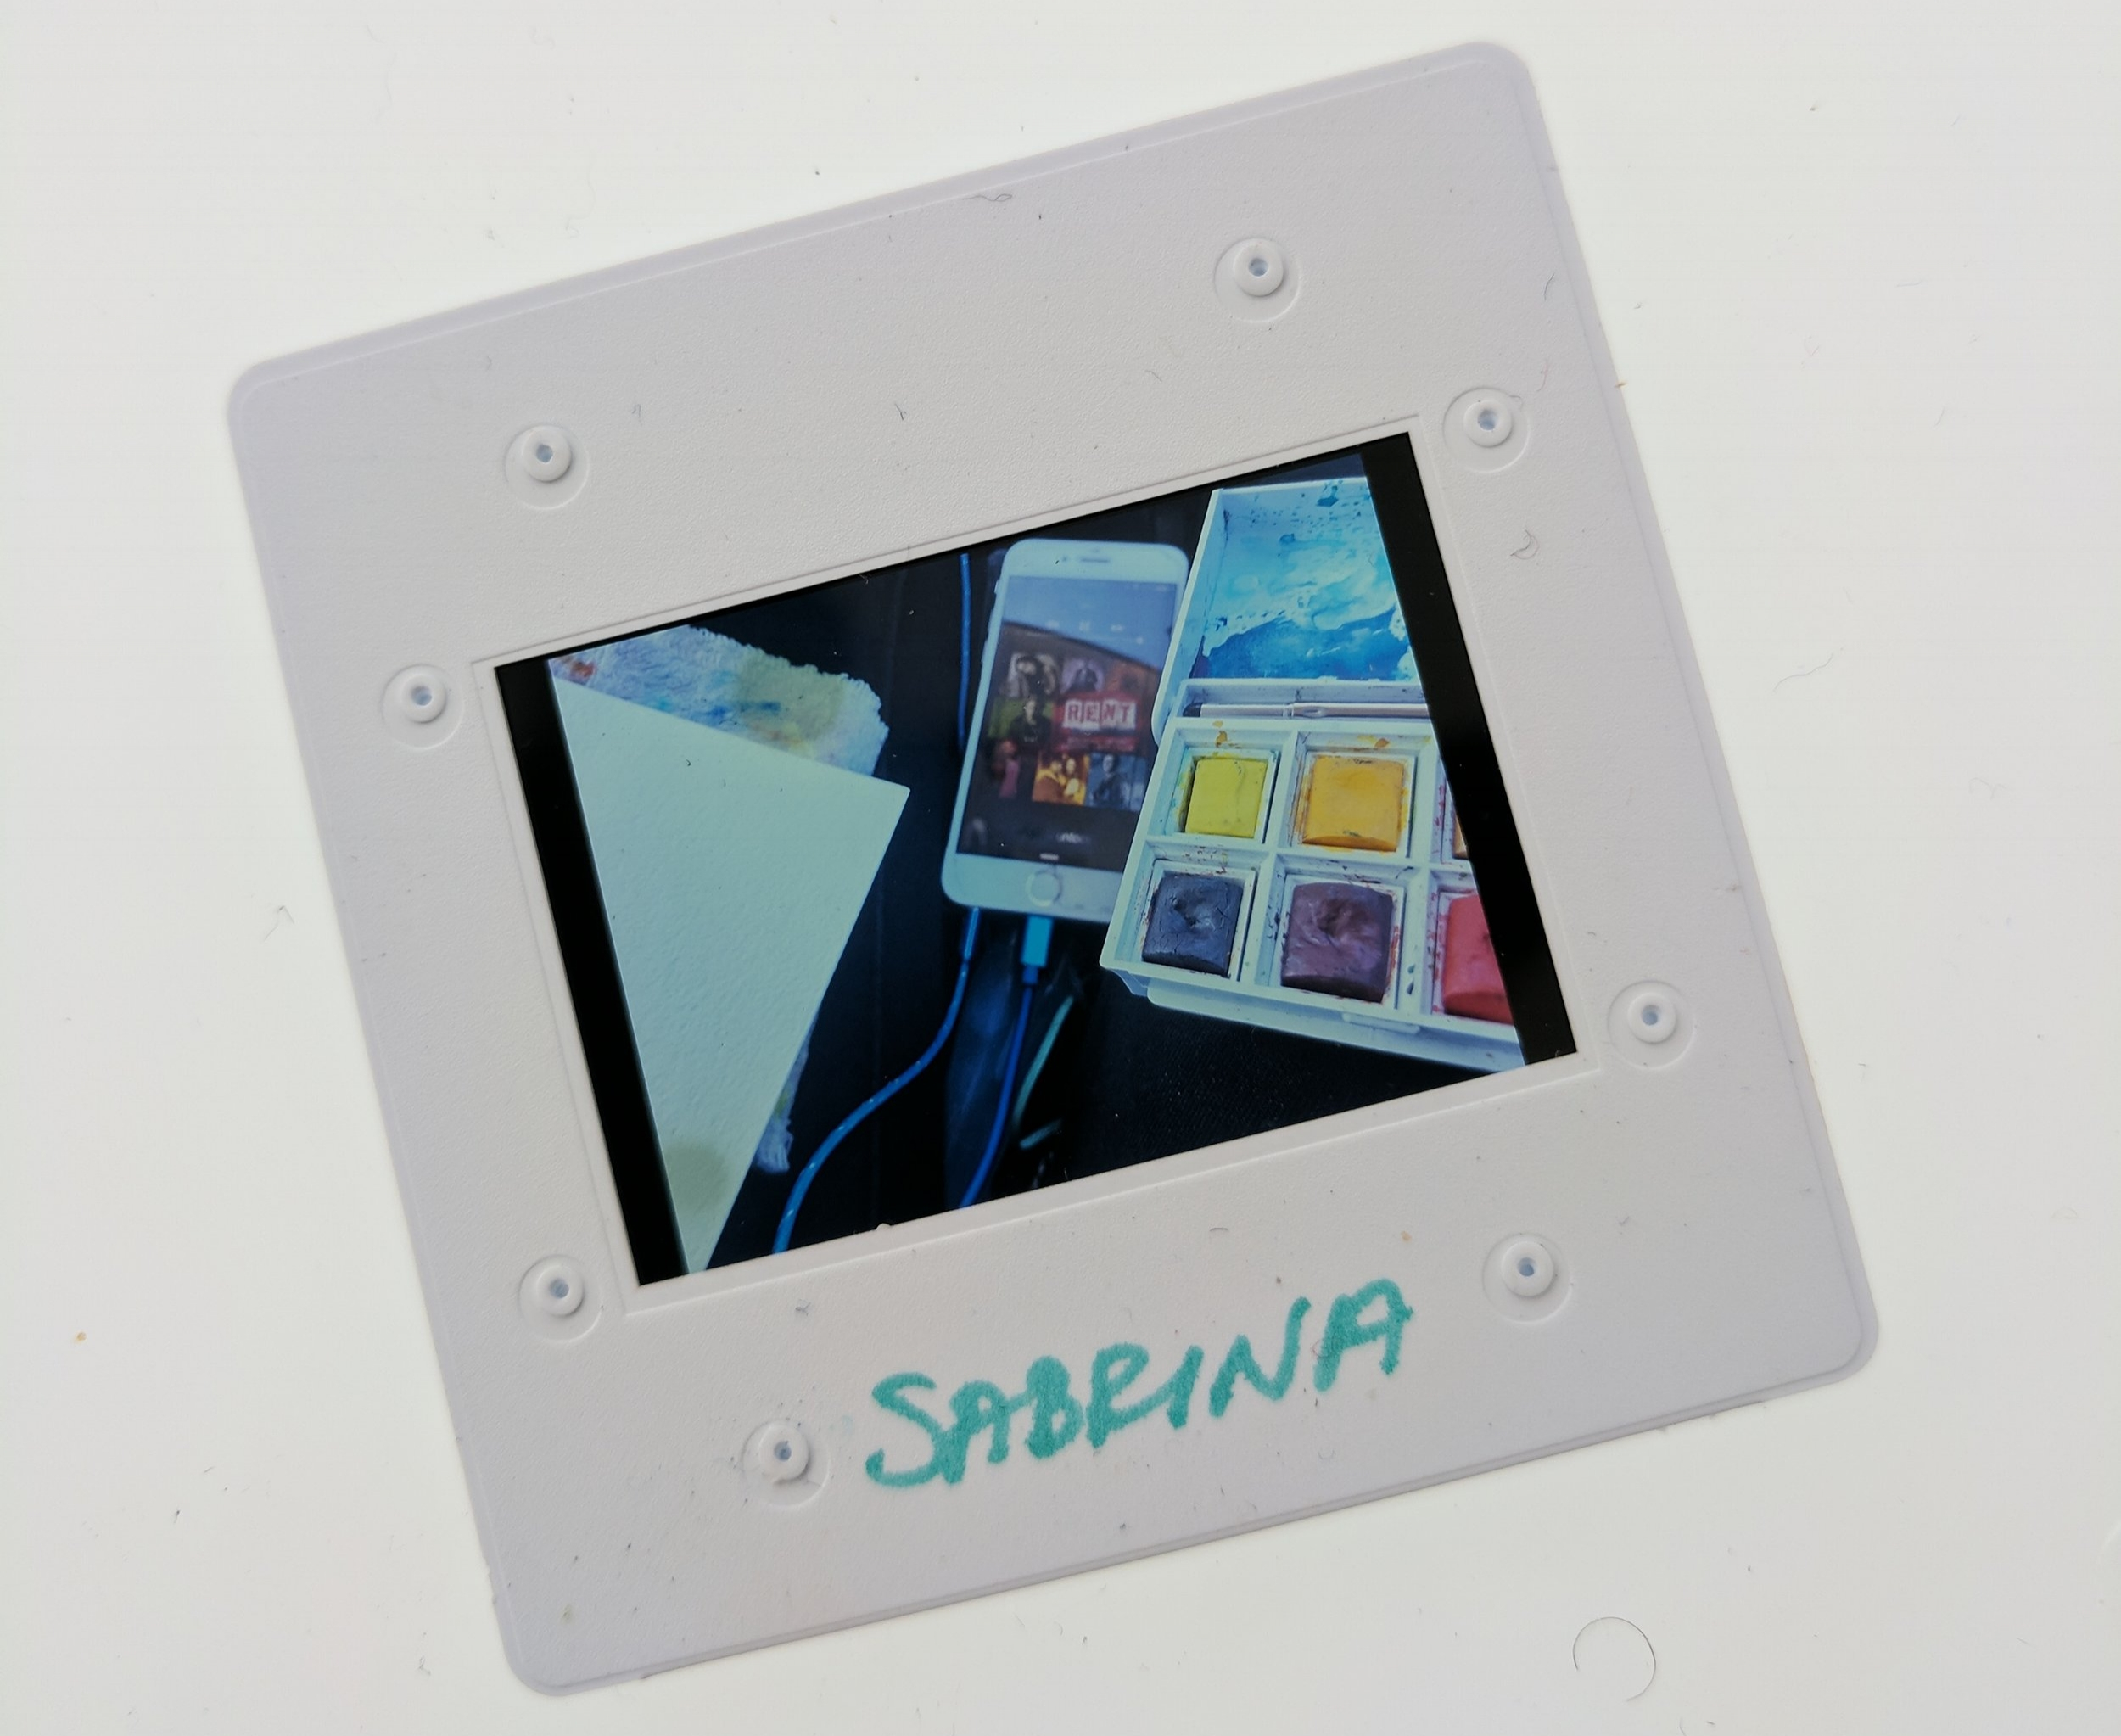 A slide with an image from Sabrina's collection.